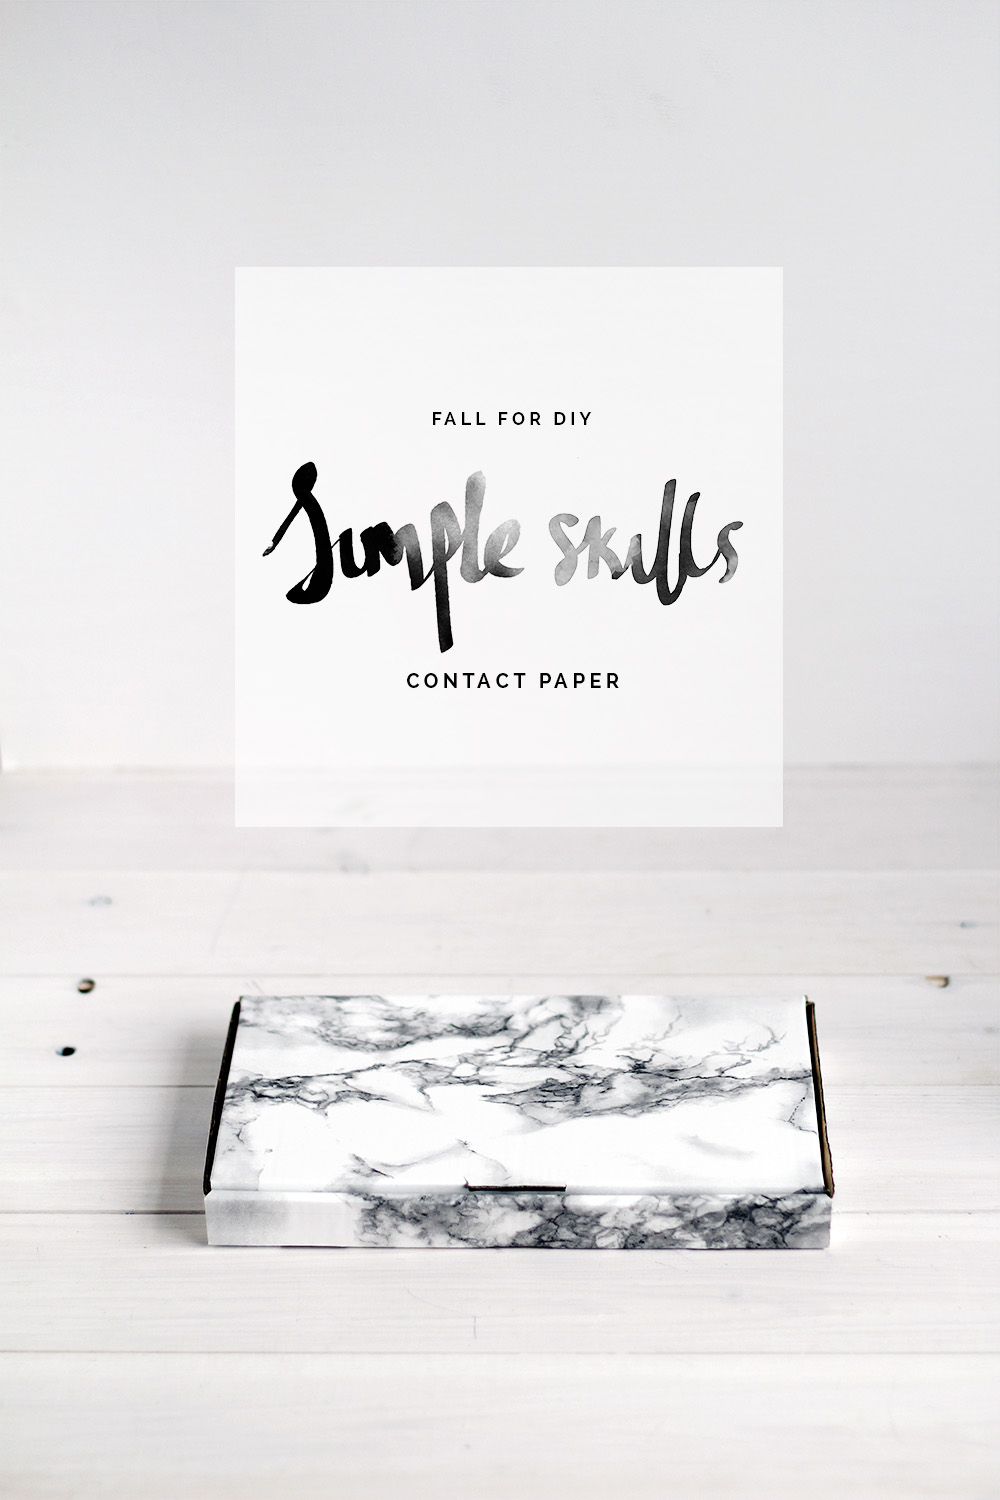 Simple Skills | Contact Paper Packaging | Fall For DIY